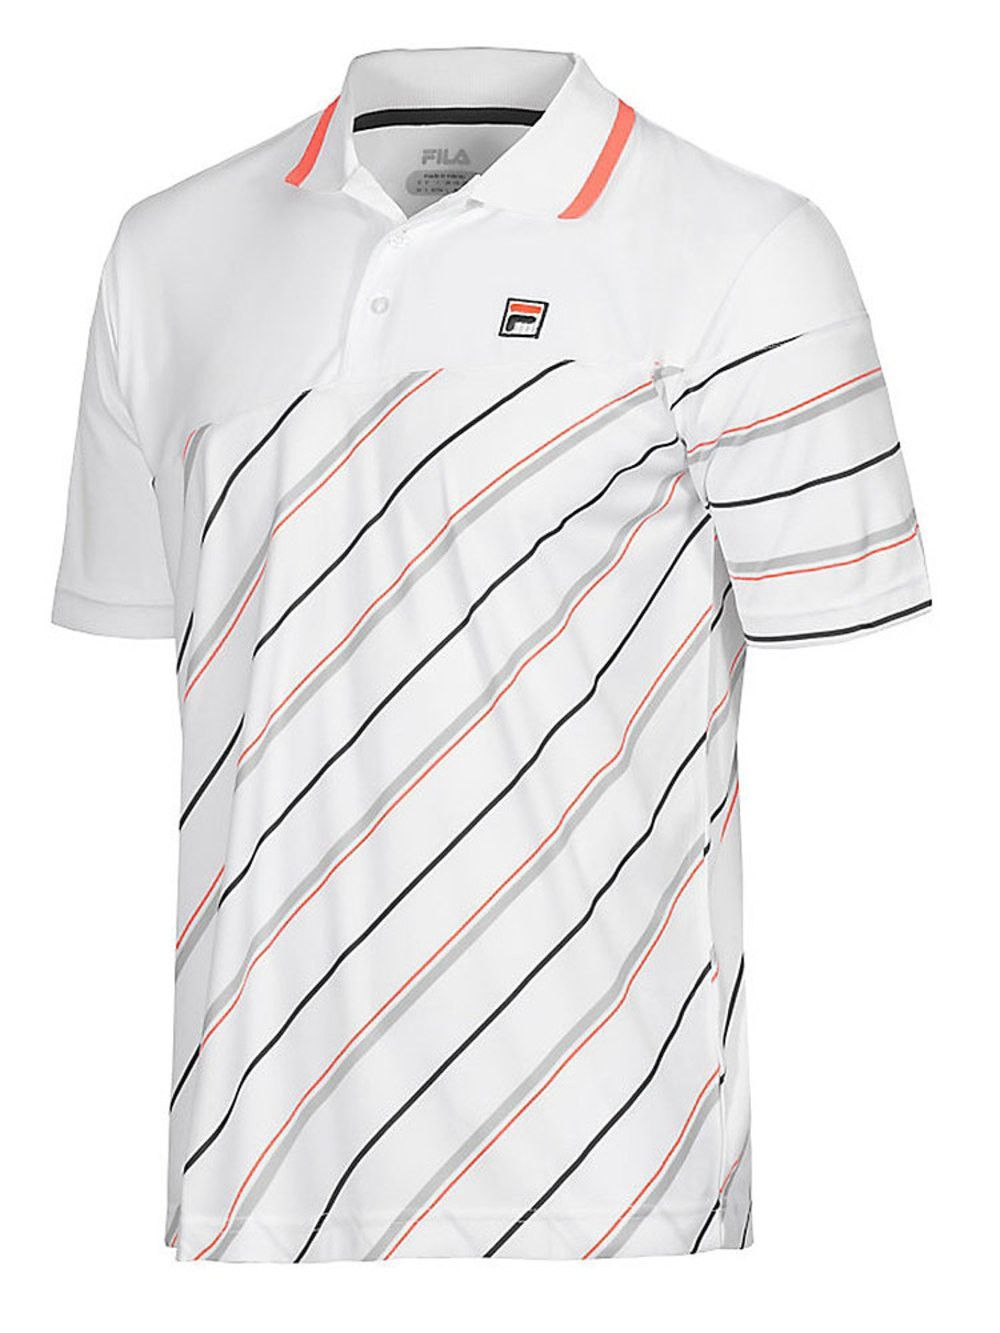 c1c765fb43137 Collezione Yarn Dyed Polo Shirt by Fila - White